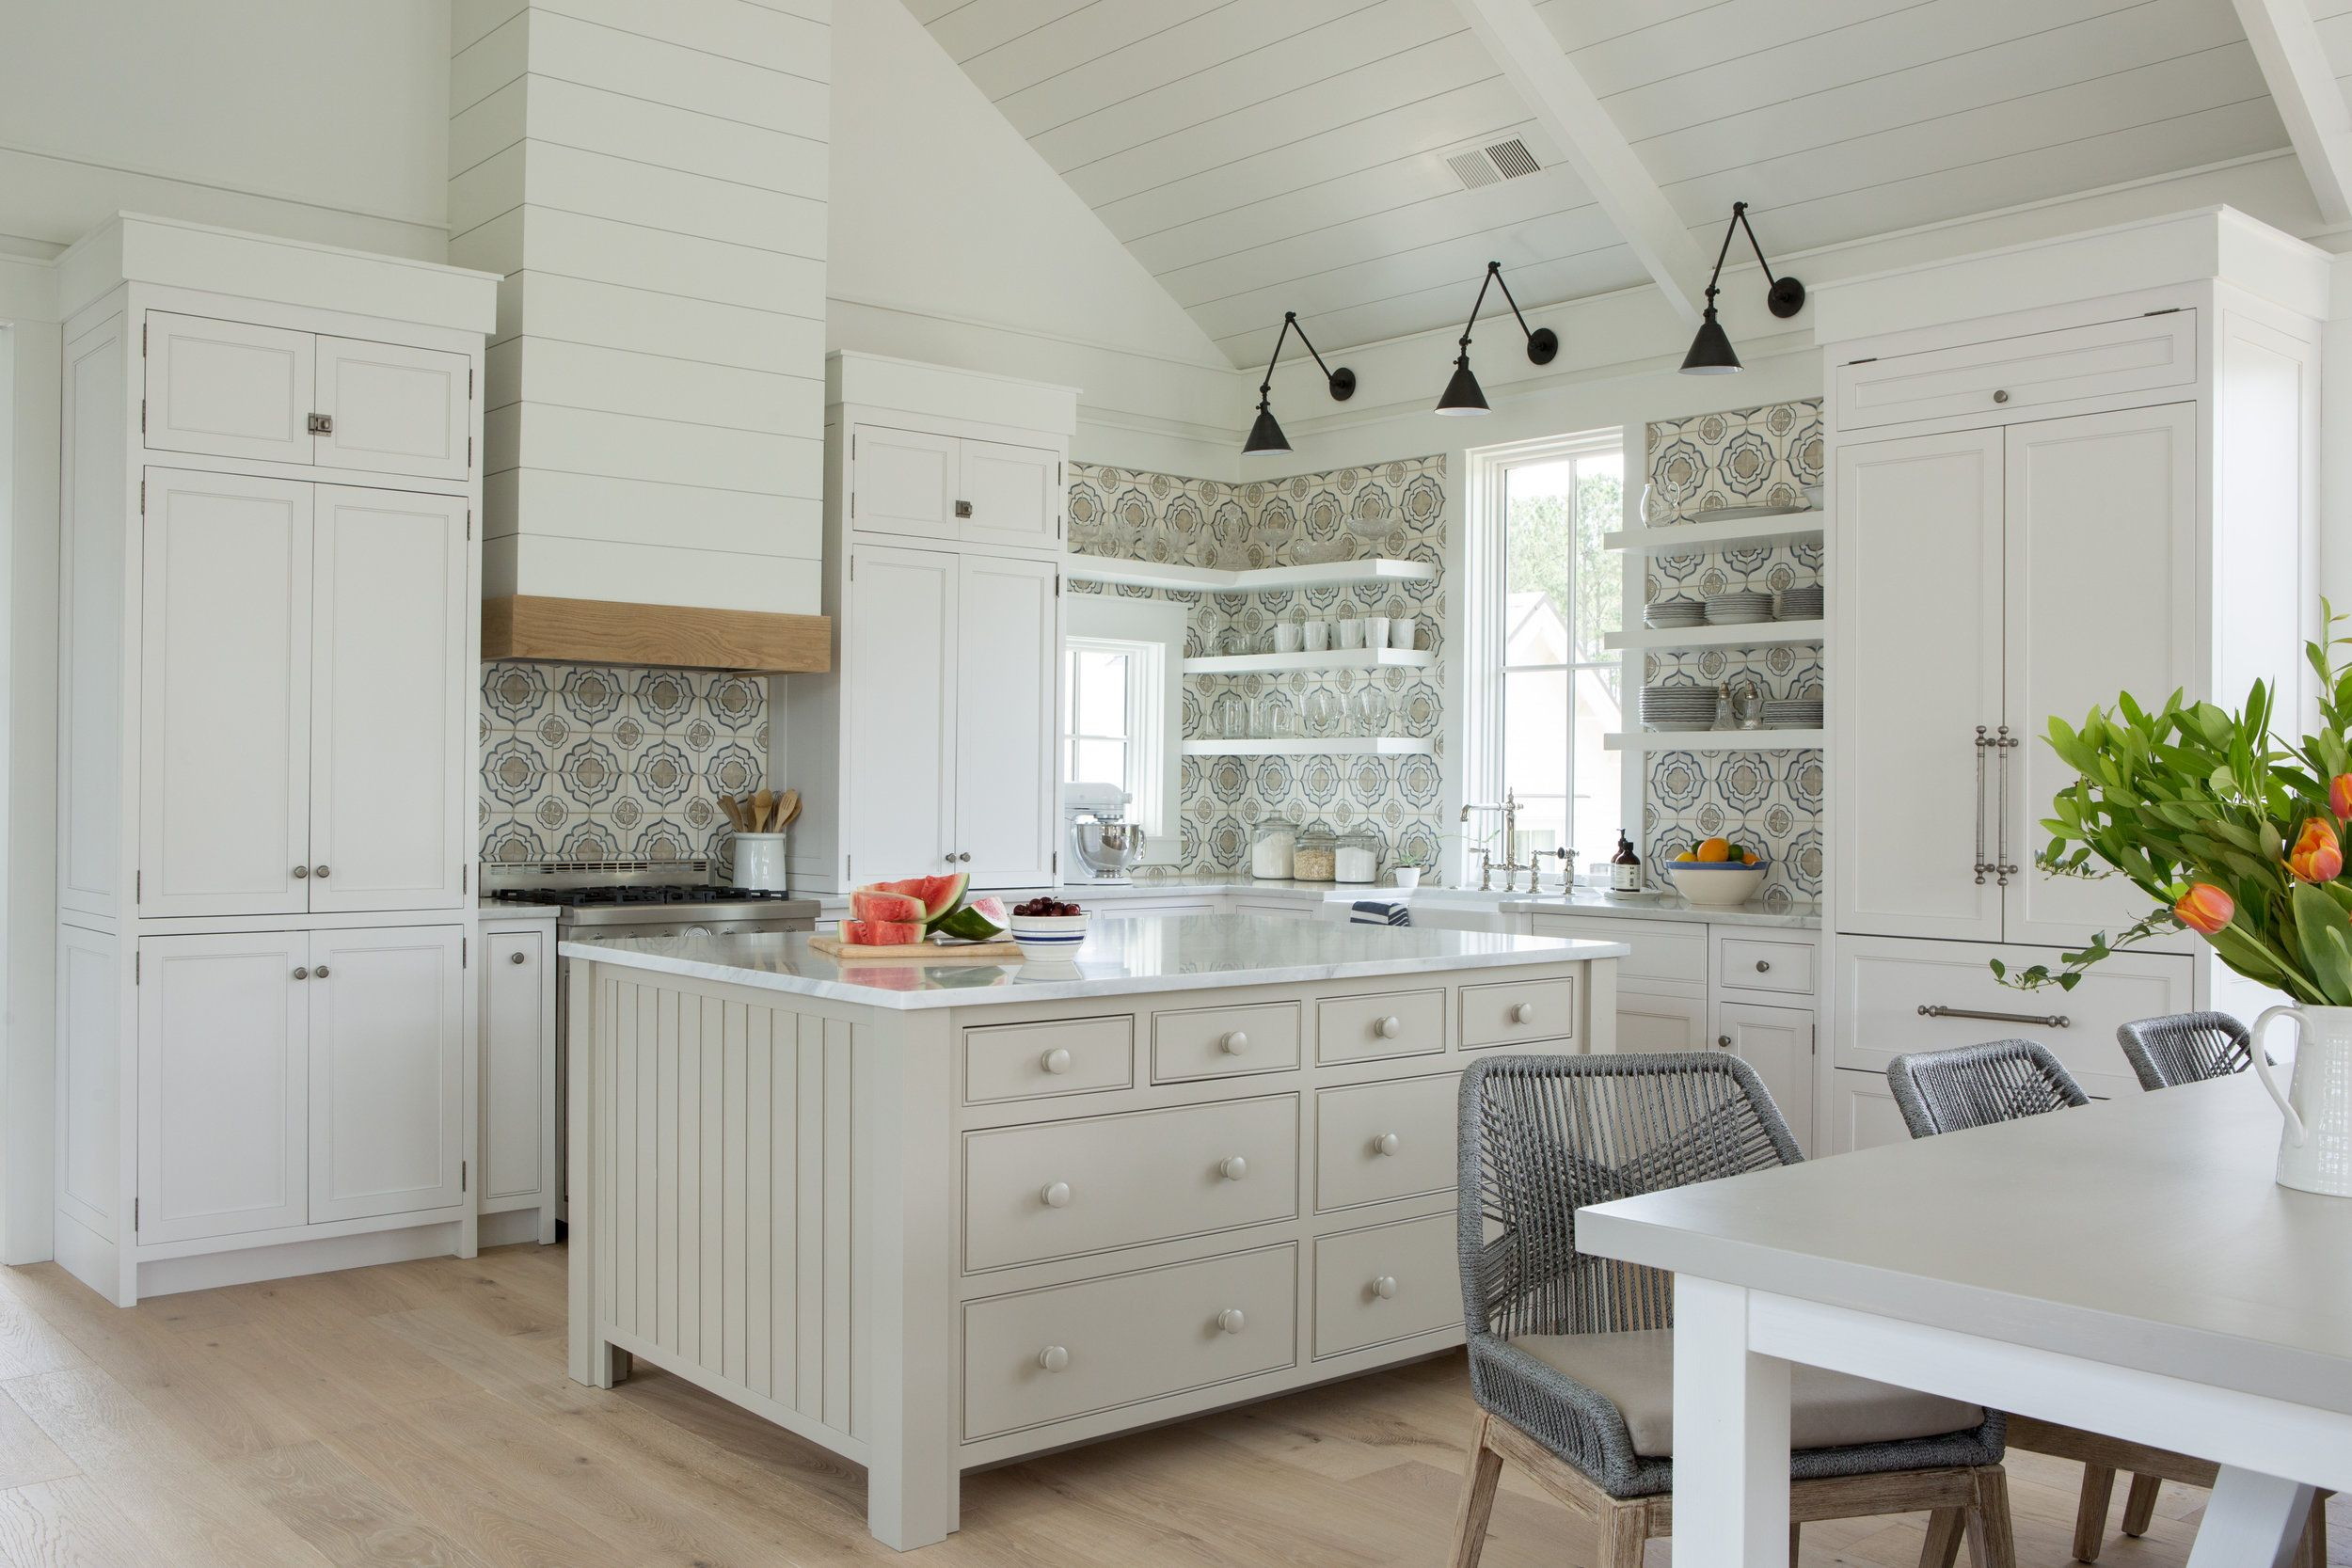 Coastal Cottage Interior Design Inspiration Part 1 Get The Look